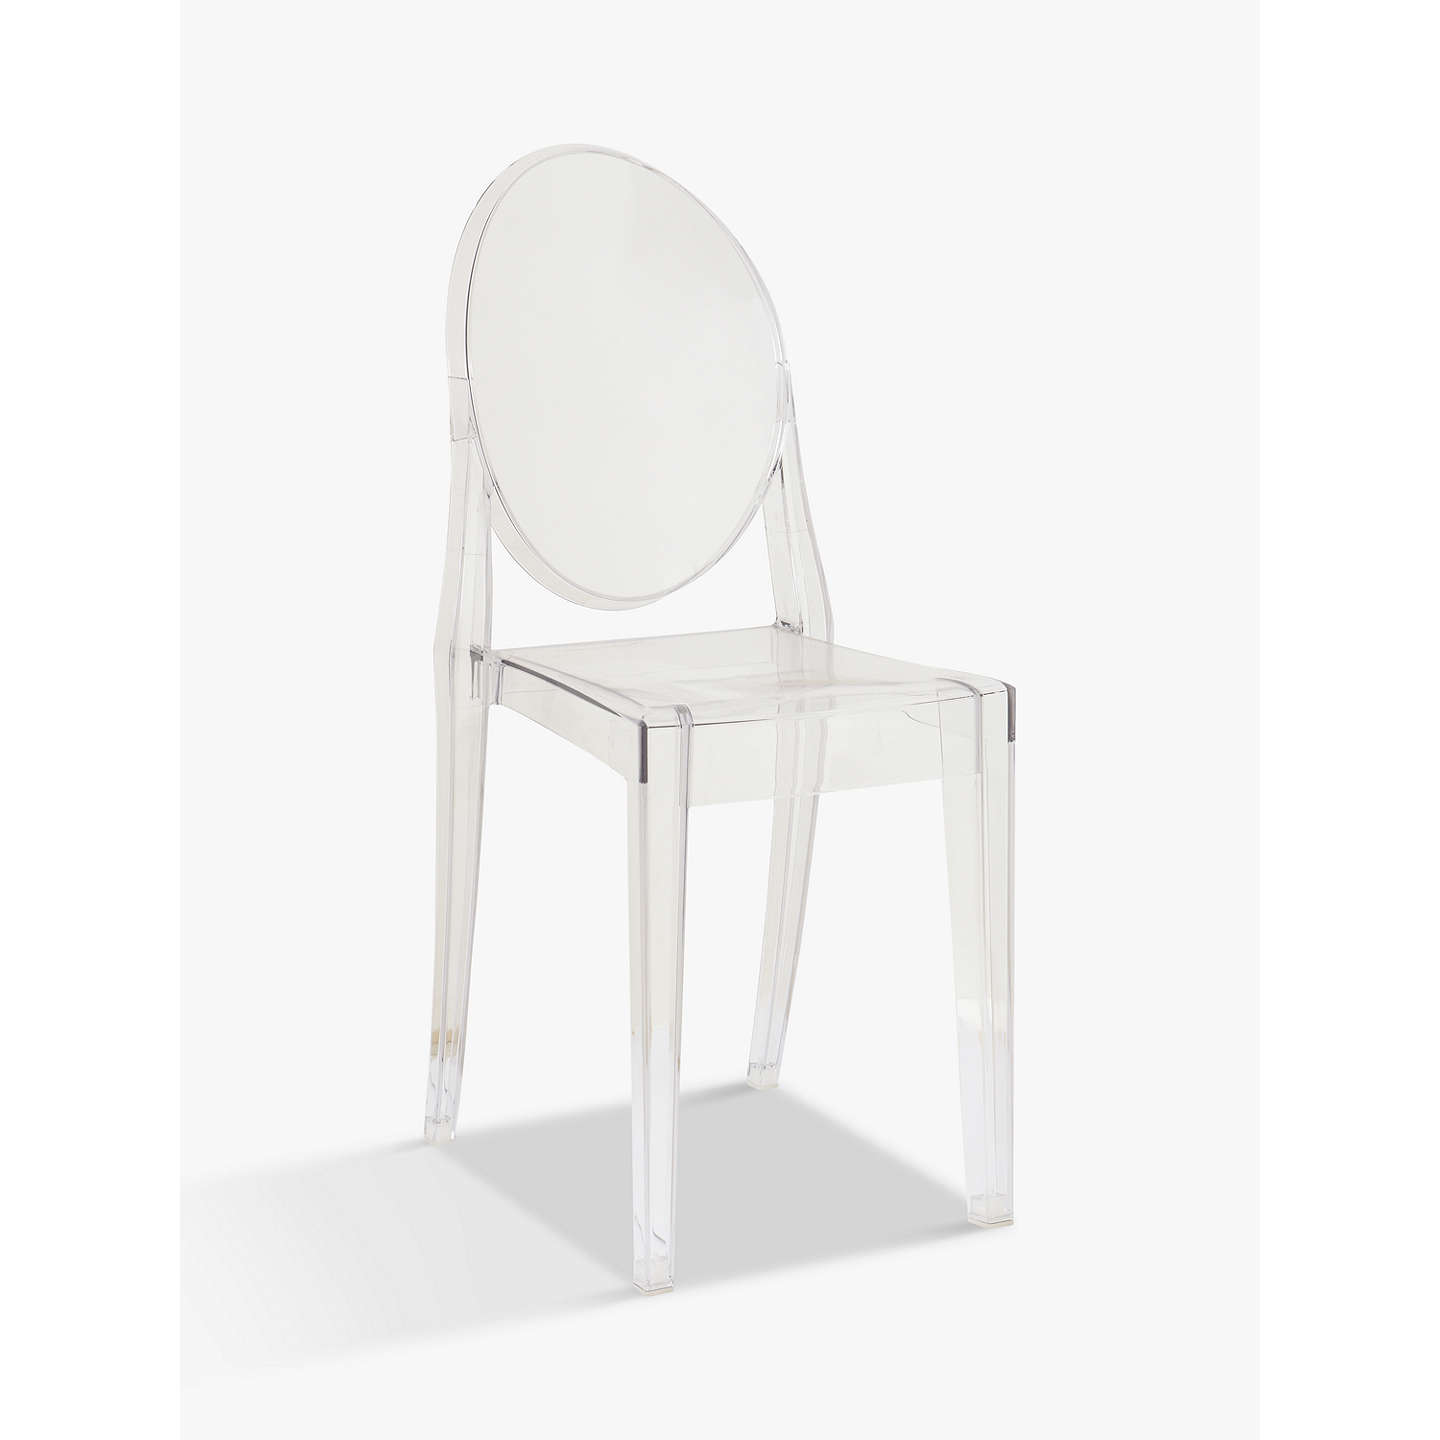 philippe starck for kartell victoria ghost chair at john lewis. Black Bedroom Furniture Sets. Home Design Ideas